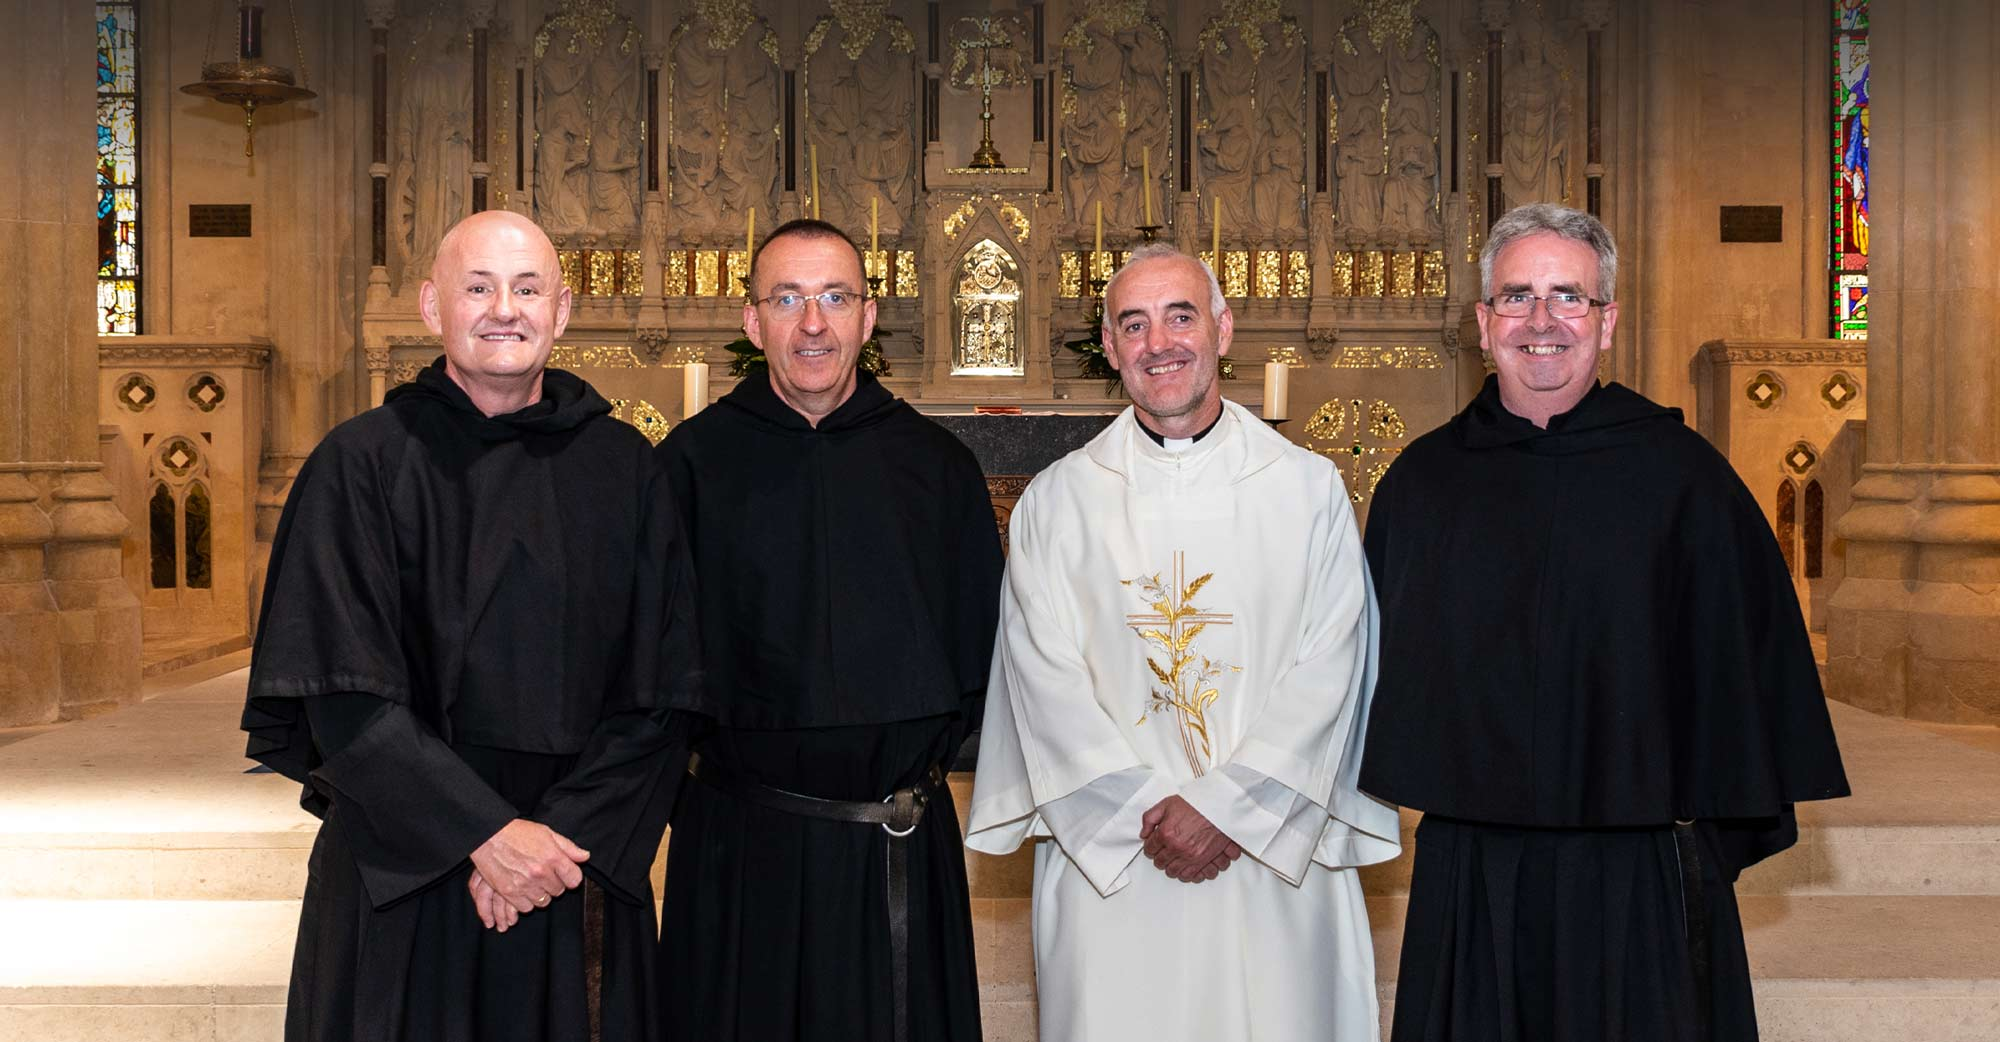 The diaconate ordination of Br. Stephen Shields OSA